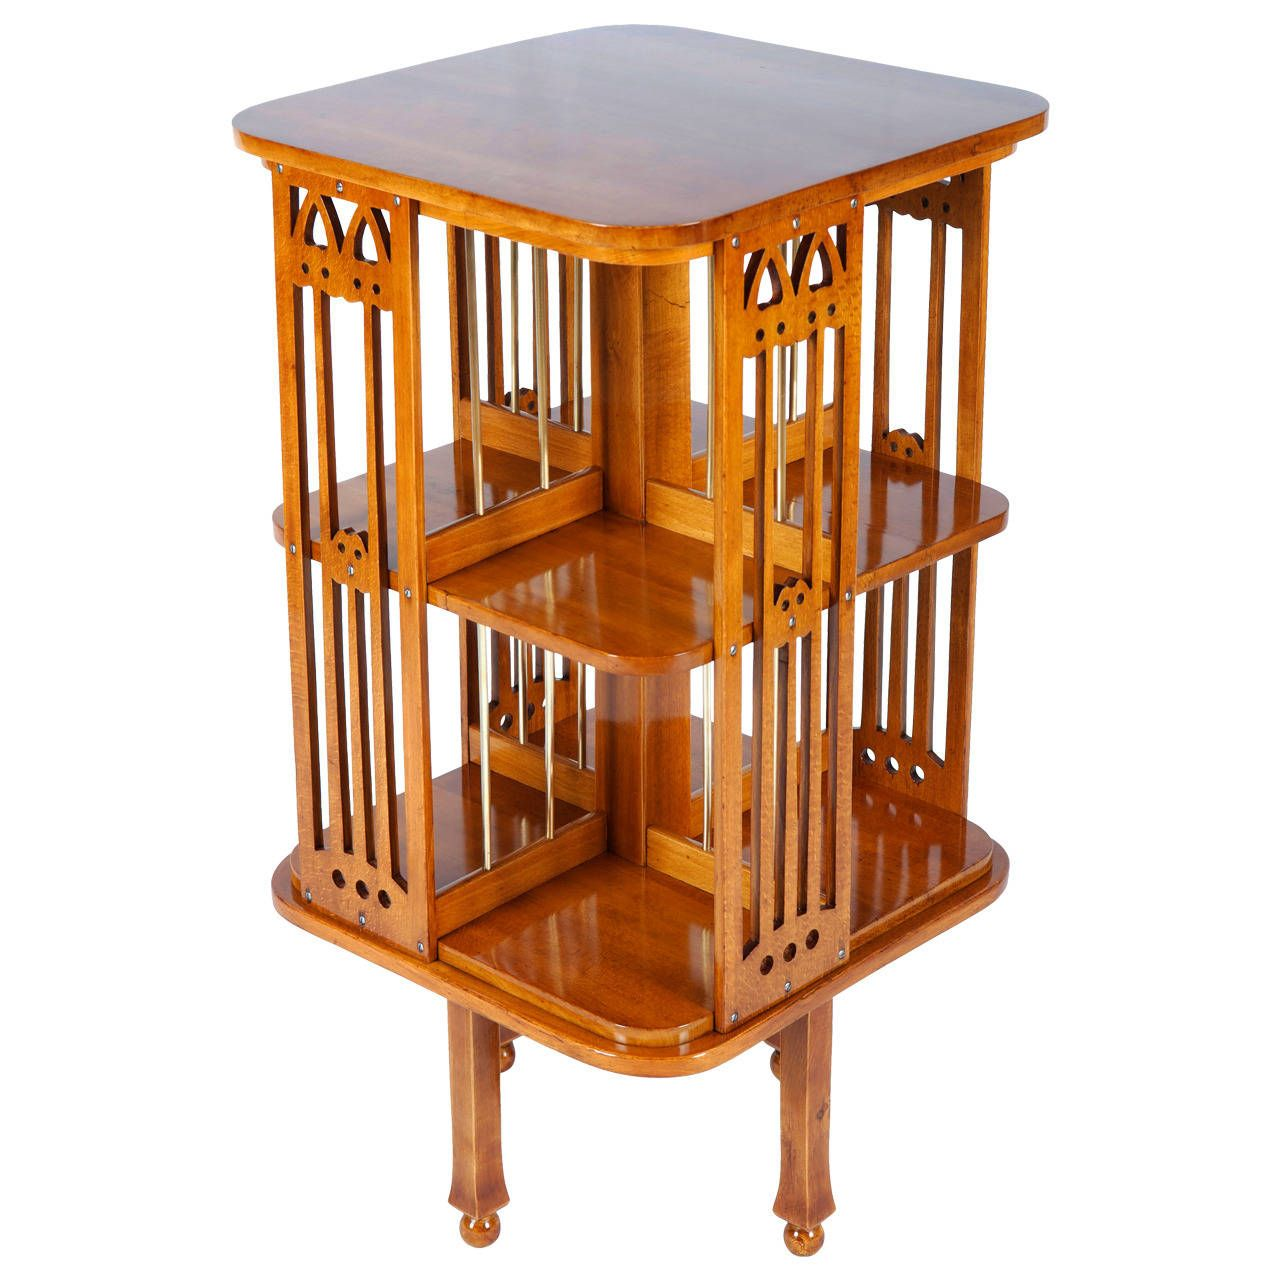 revolving chair manufacturers in mumbai unique dining room chairs very rare thonet bookcase attributed to josef